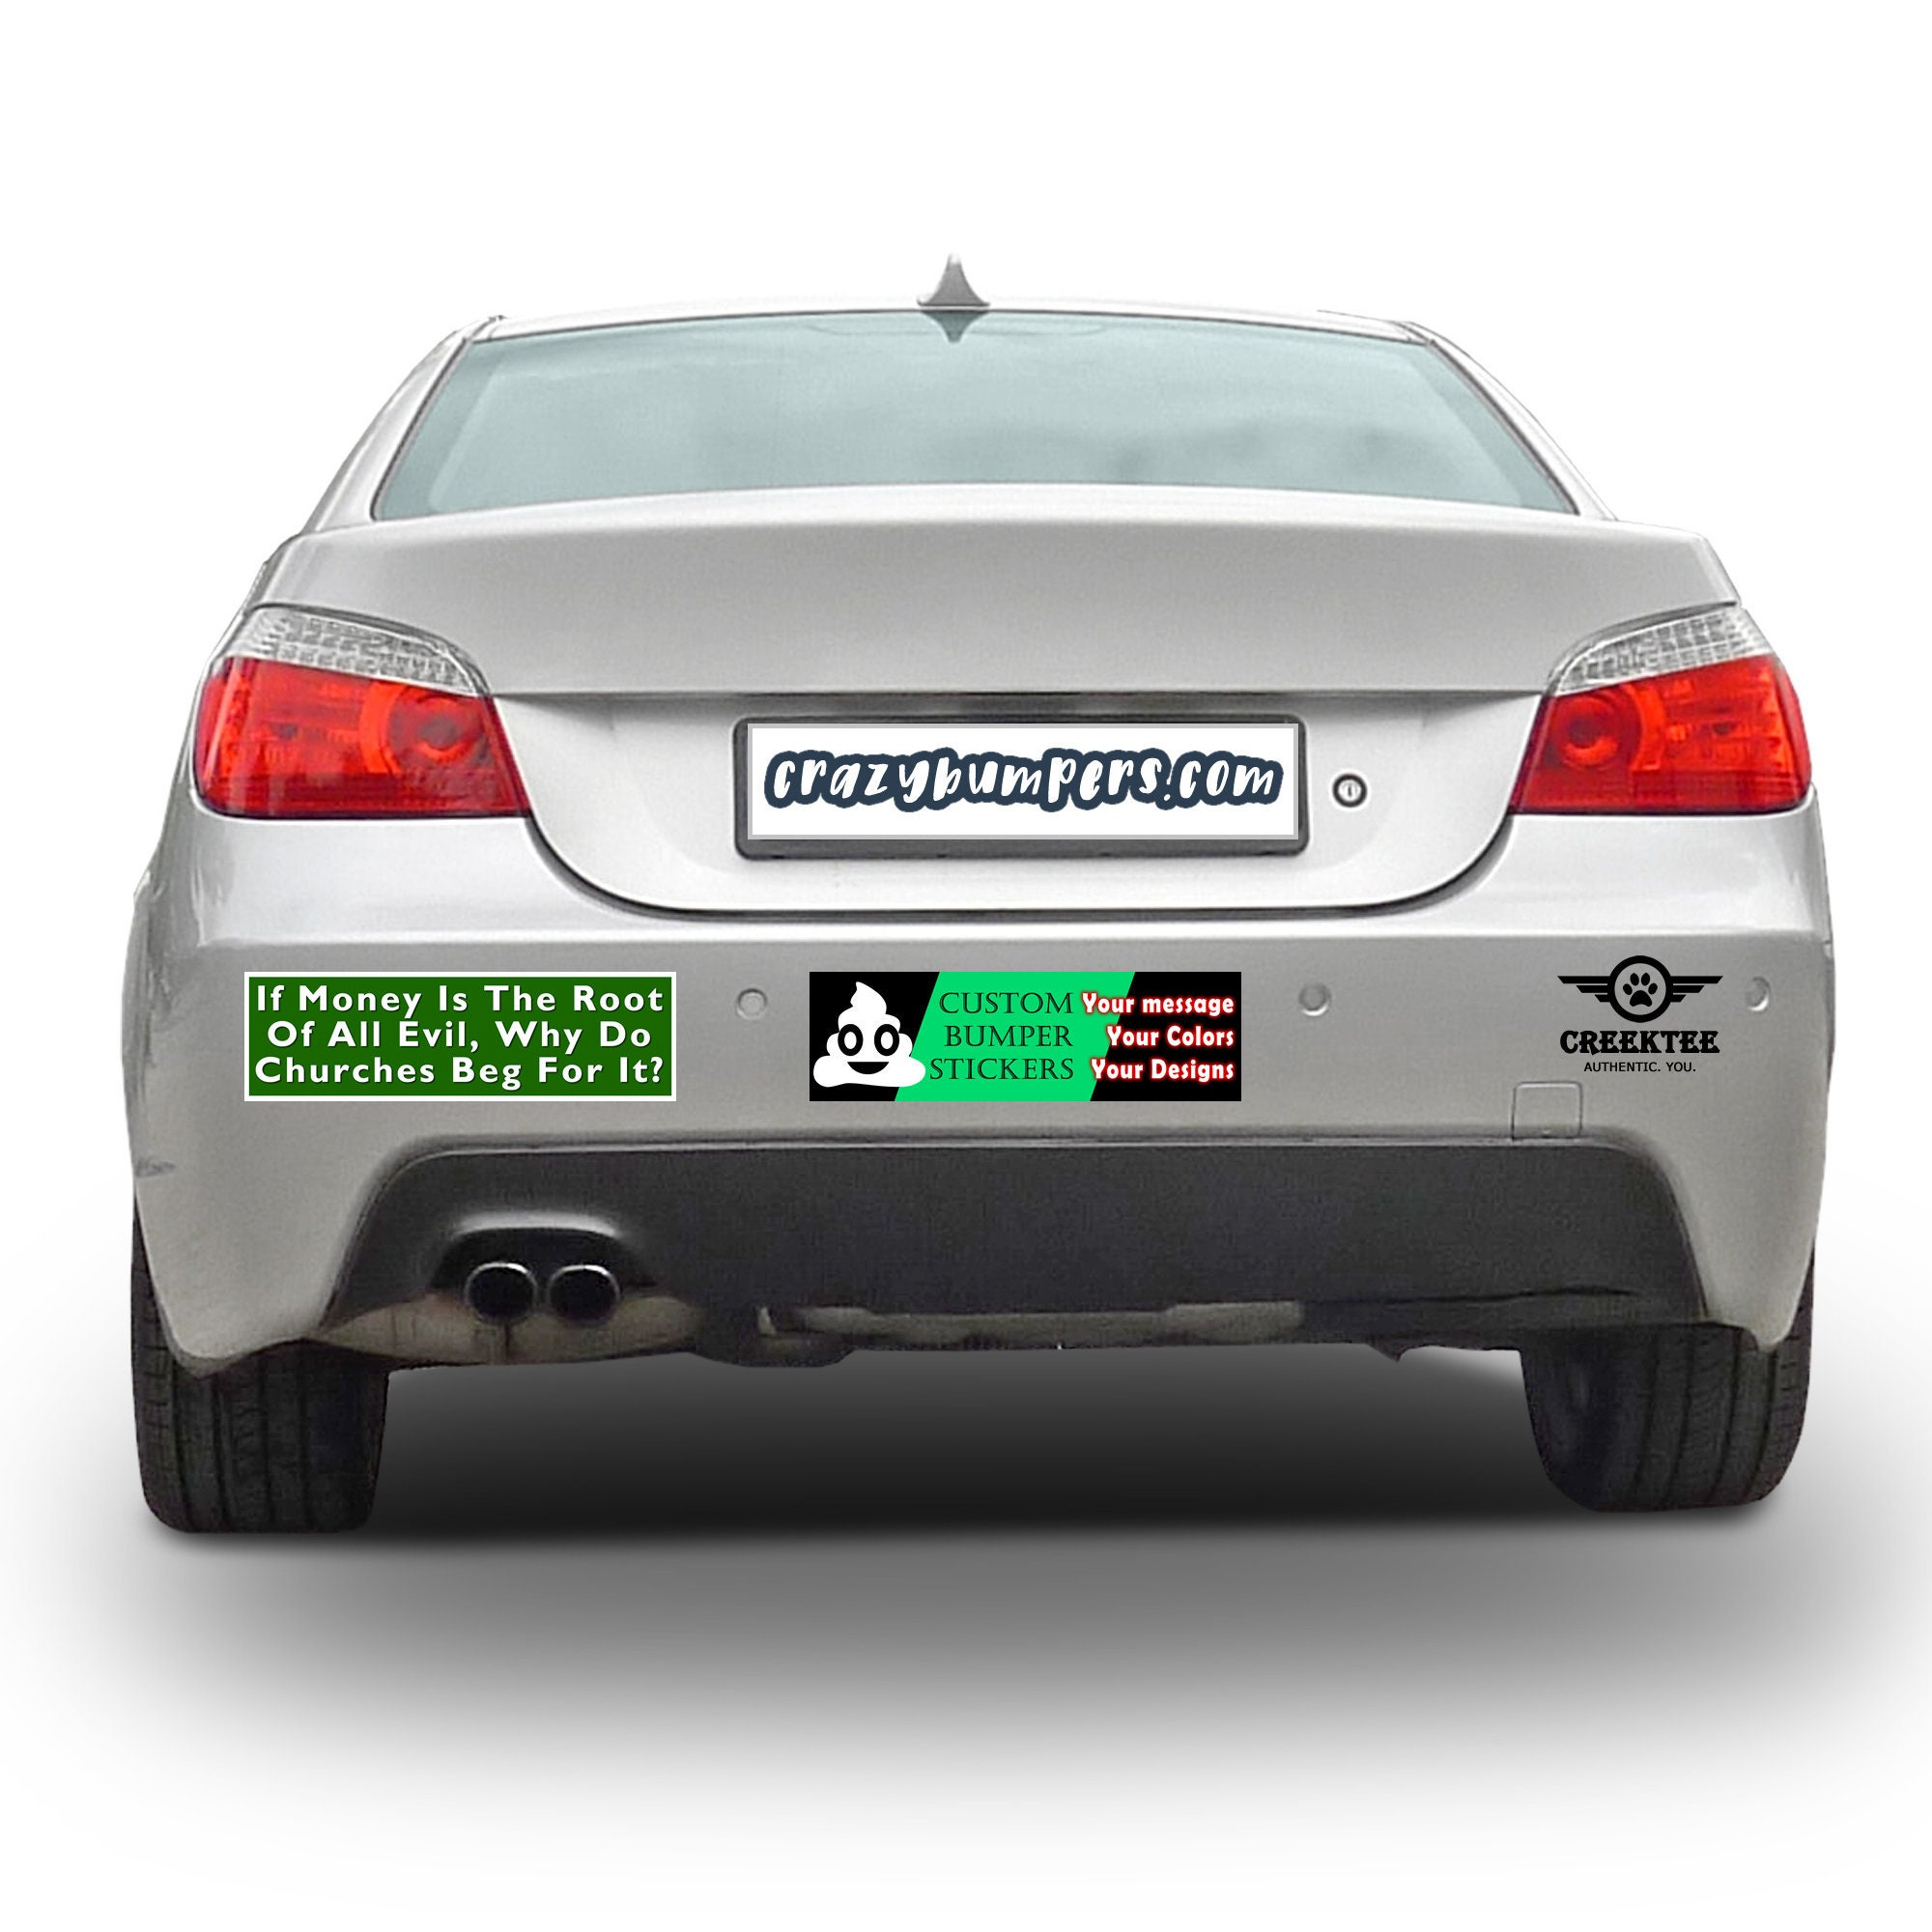 If Money Is The Root Of All Evil Why Do Churches Beg For It 10 x 3 Bumper Sticker or Magnetic Bumper Sticker Available